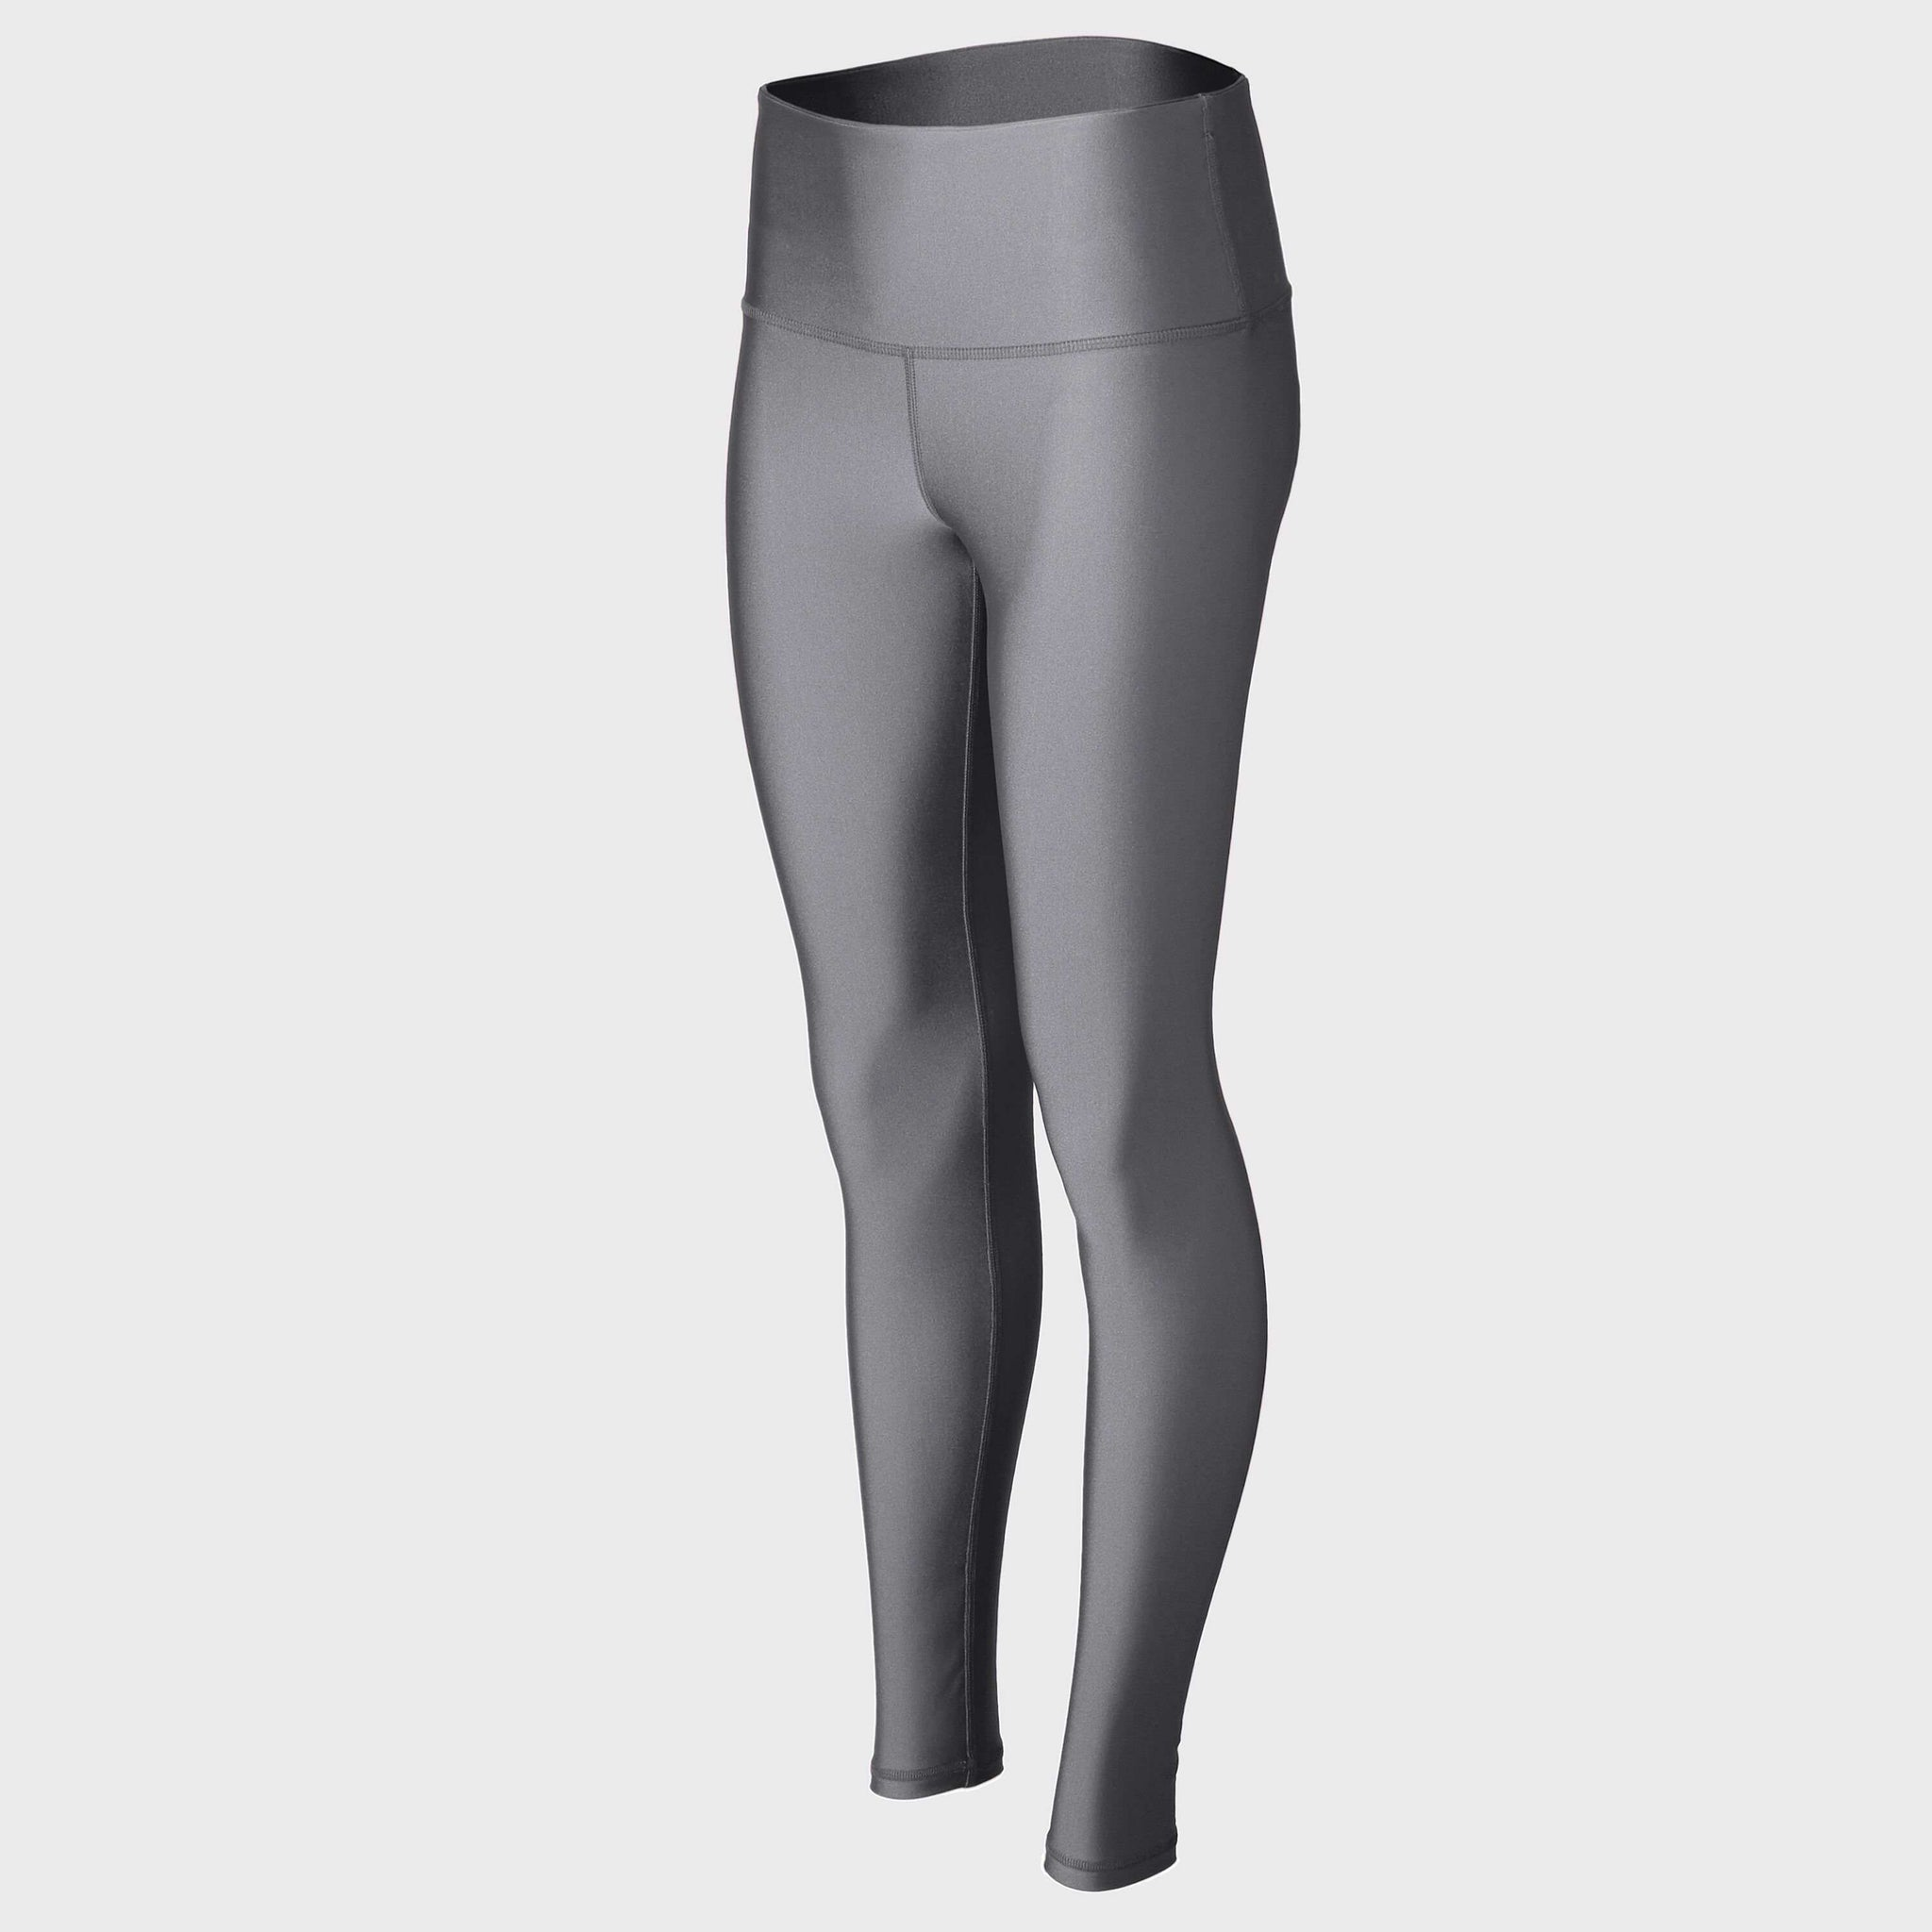 BEYOND LEGGING - HIGH WAISTED SHINY CHARCOAL